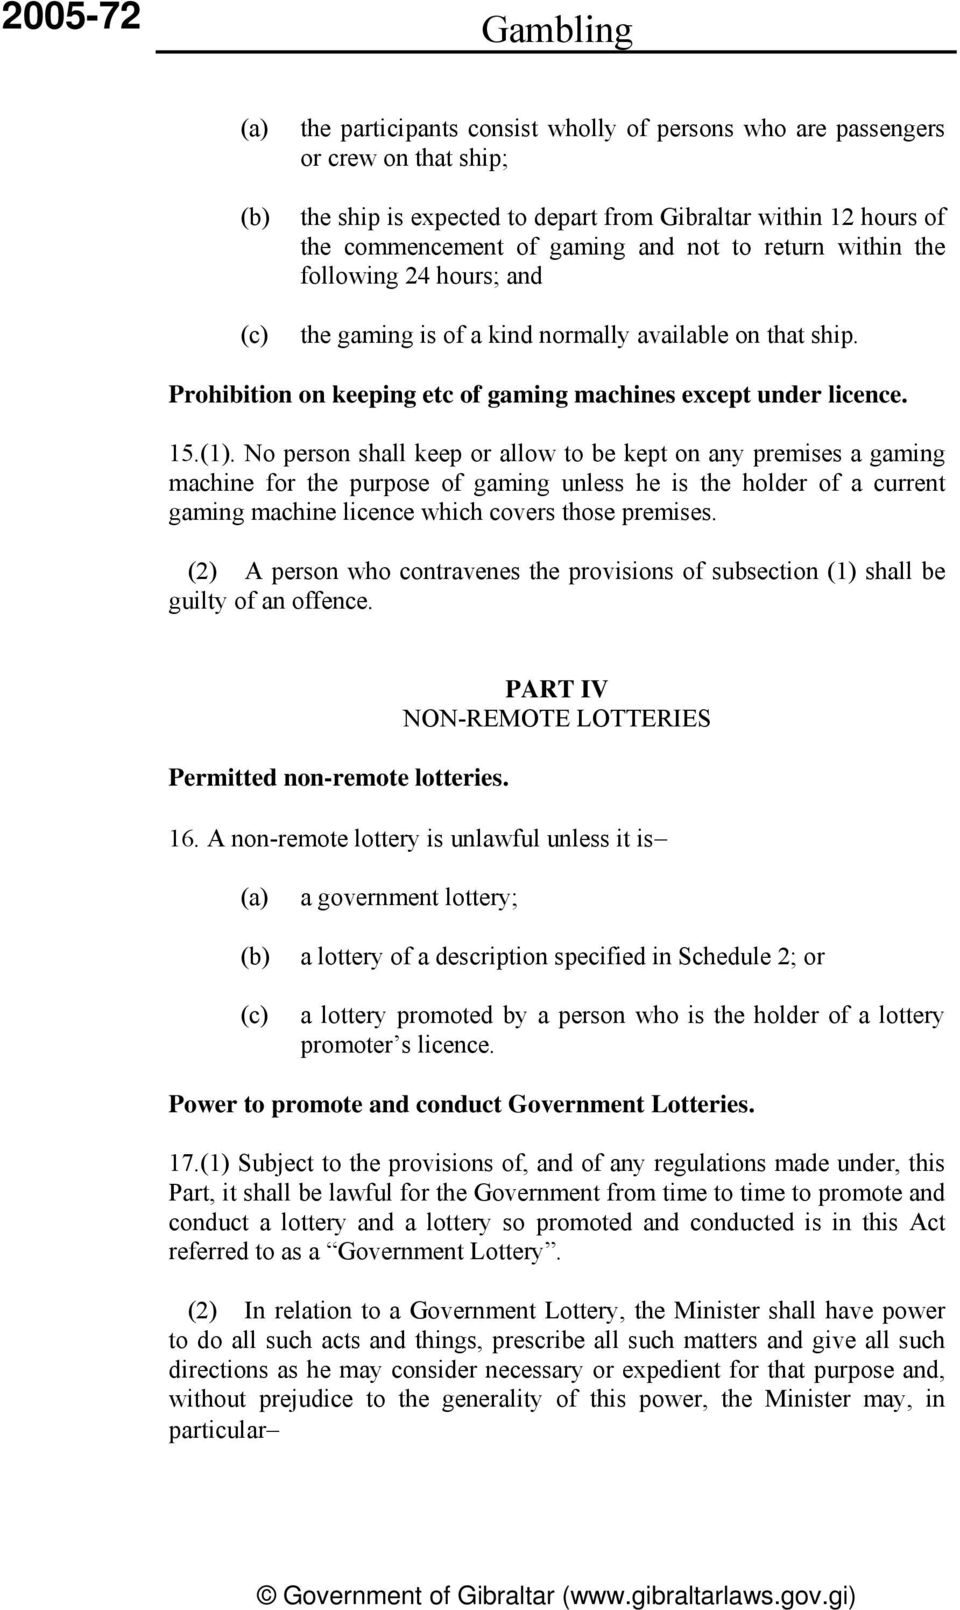 No person shall keep or allow to be kept on any premises a gaming machine for the purpose of gaming unless he is the holder of a current gaming machine licence which covers those premises.